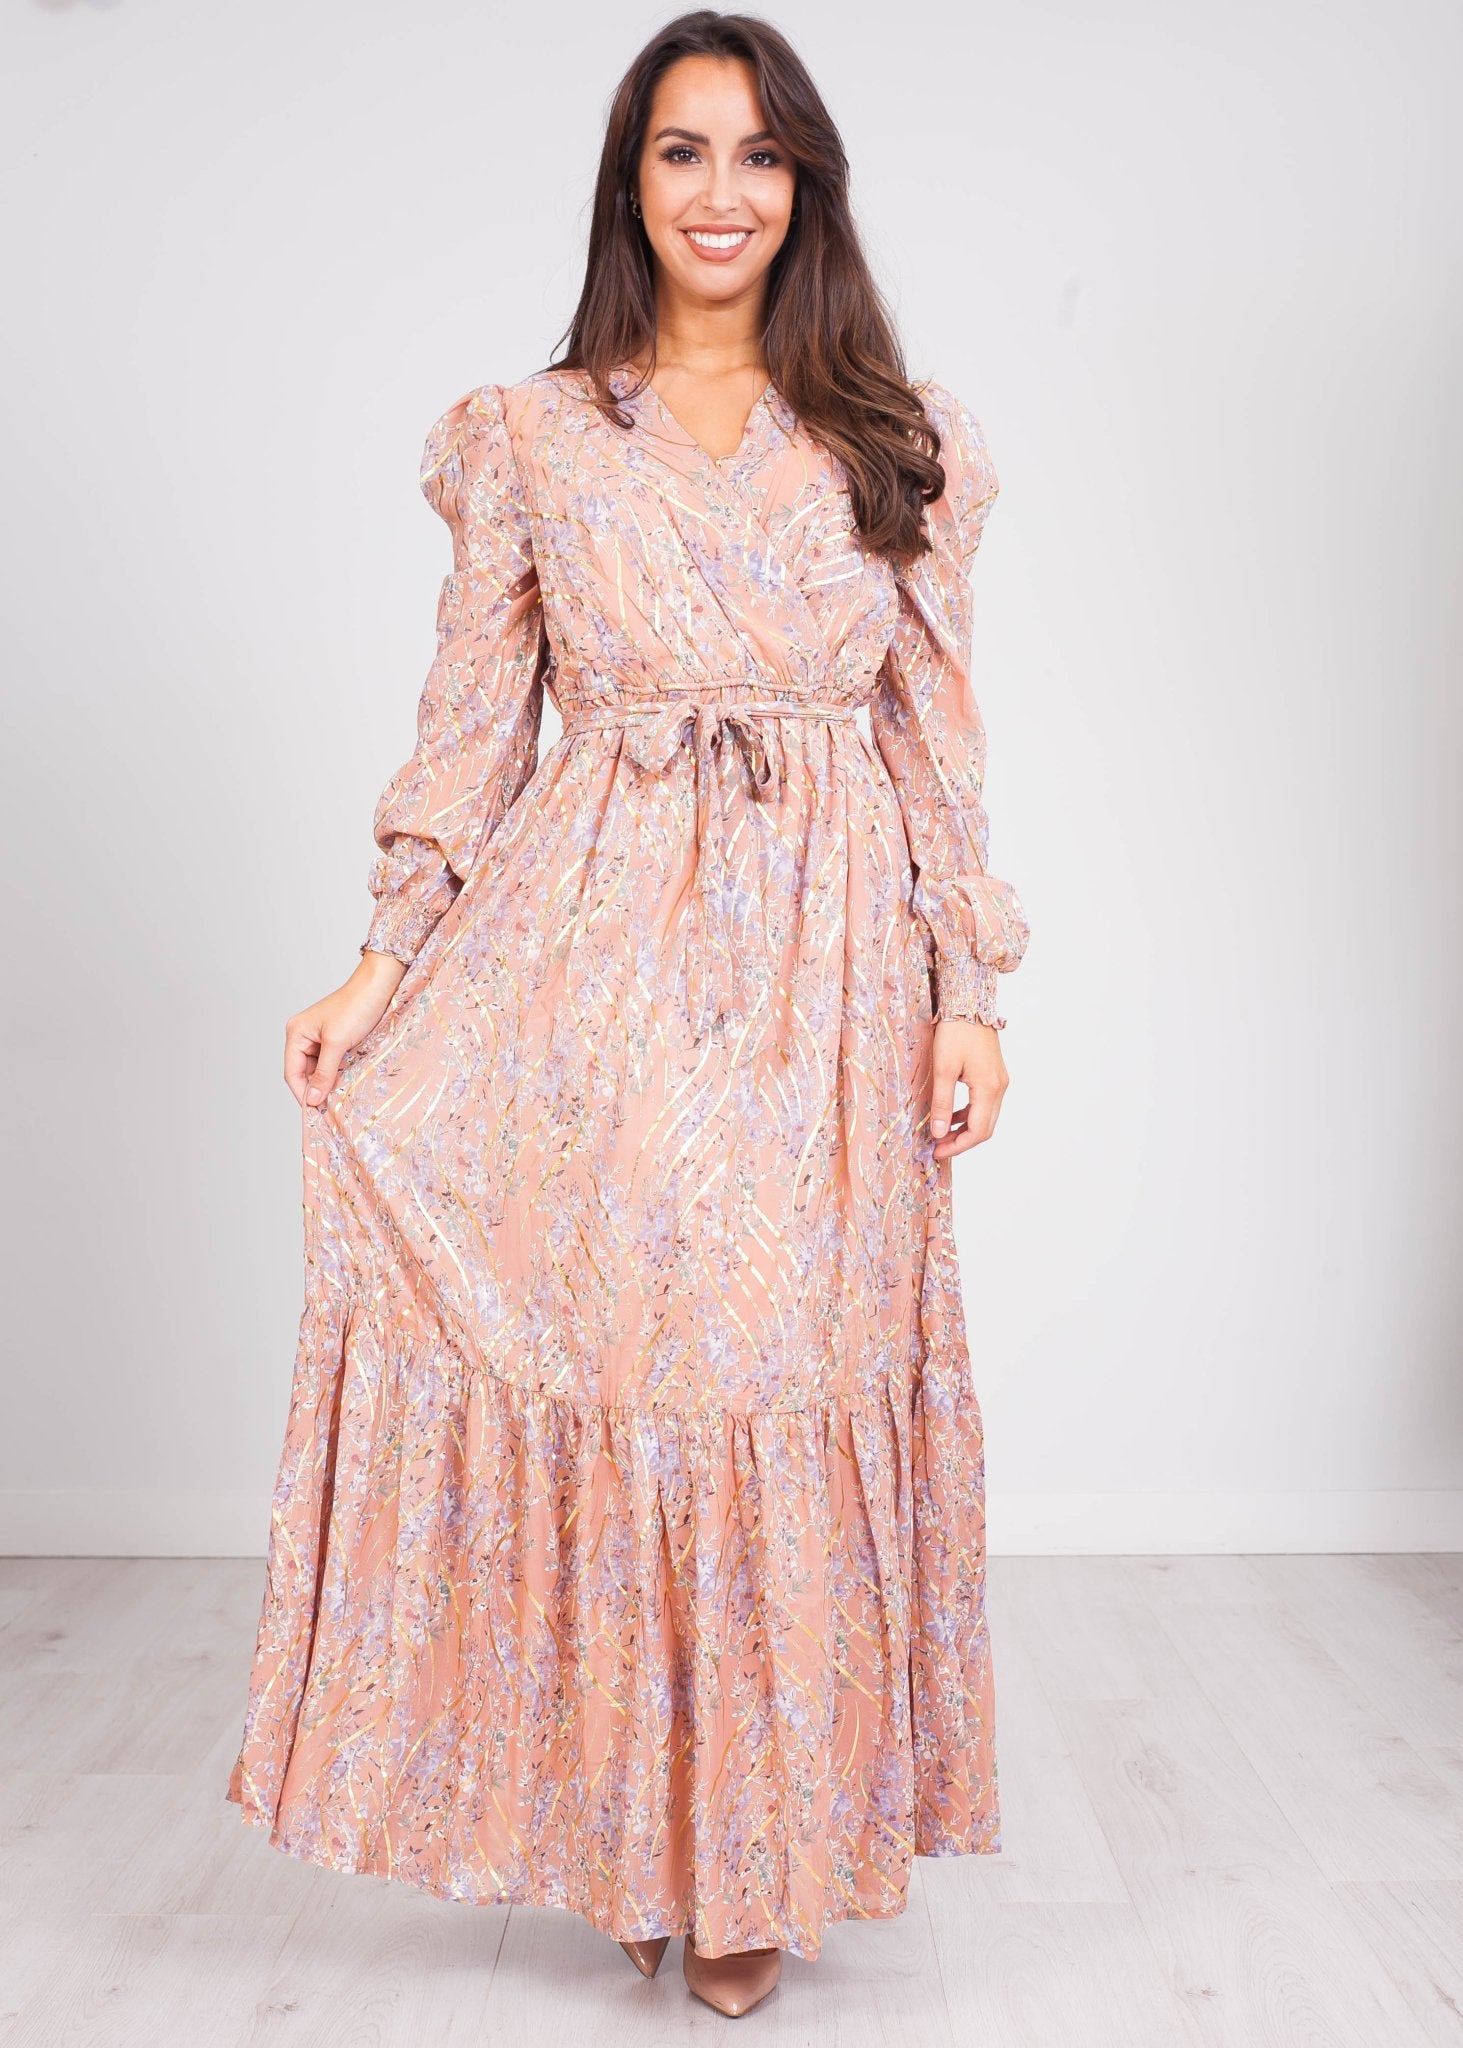 Emilia Blush & Gold Floral Midi Dress - The Walk in Wardrobe